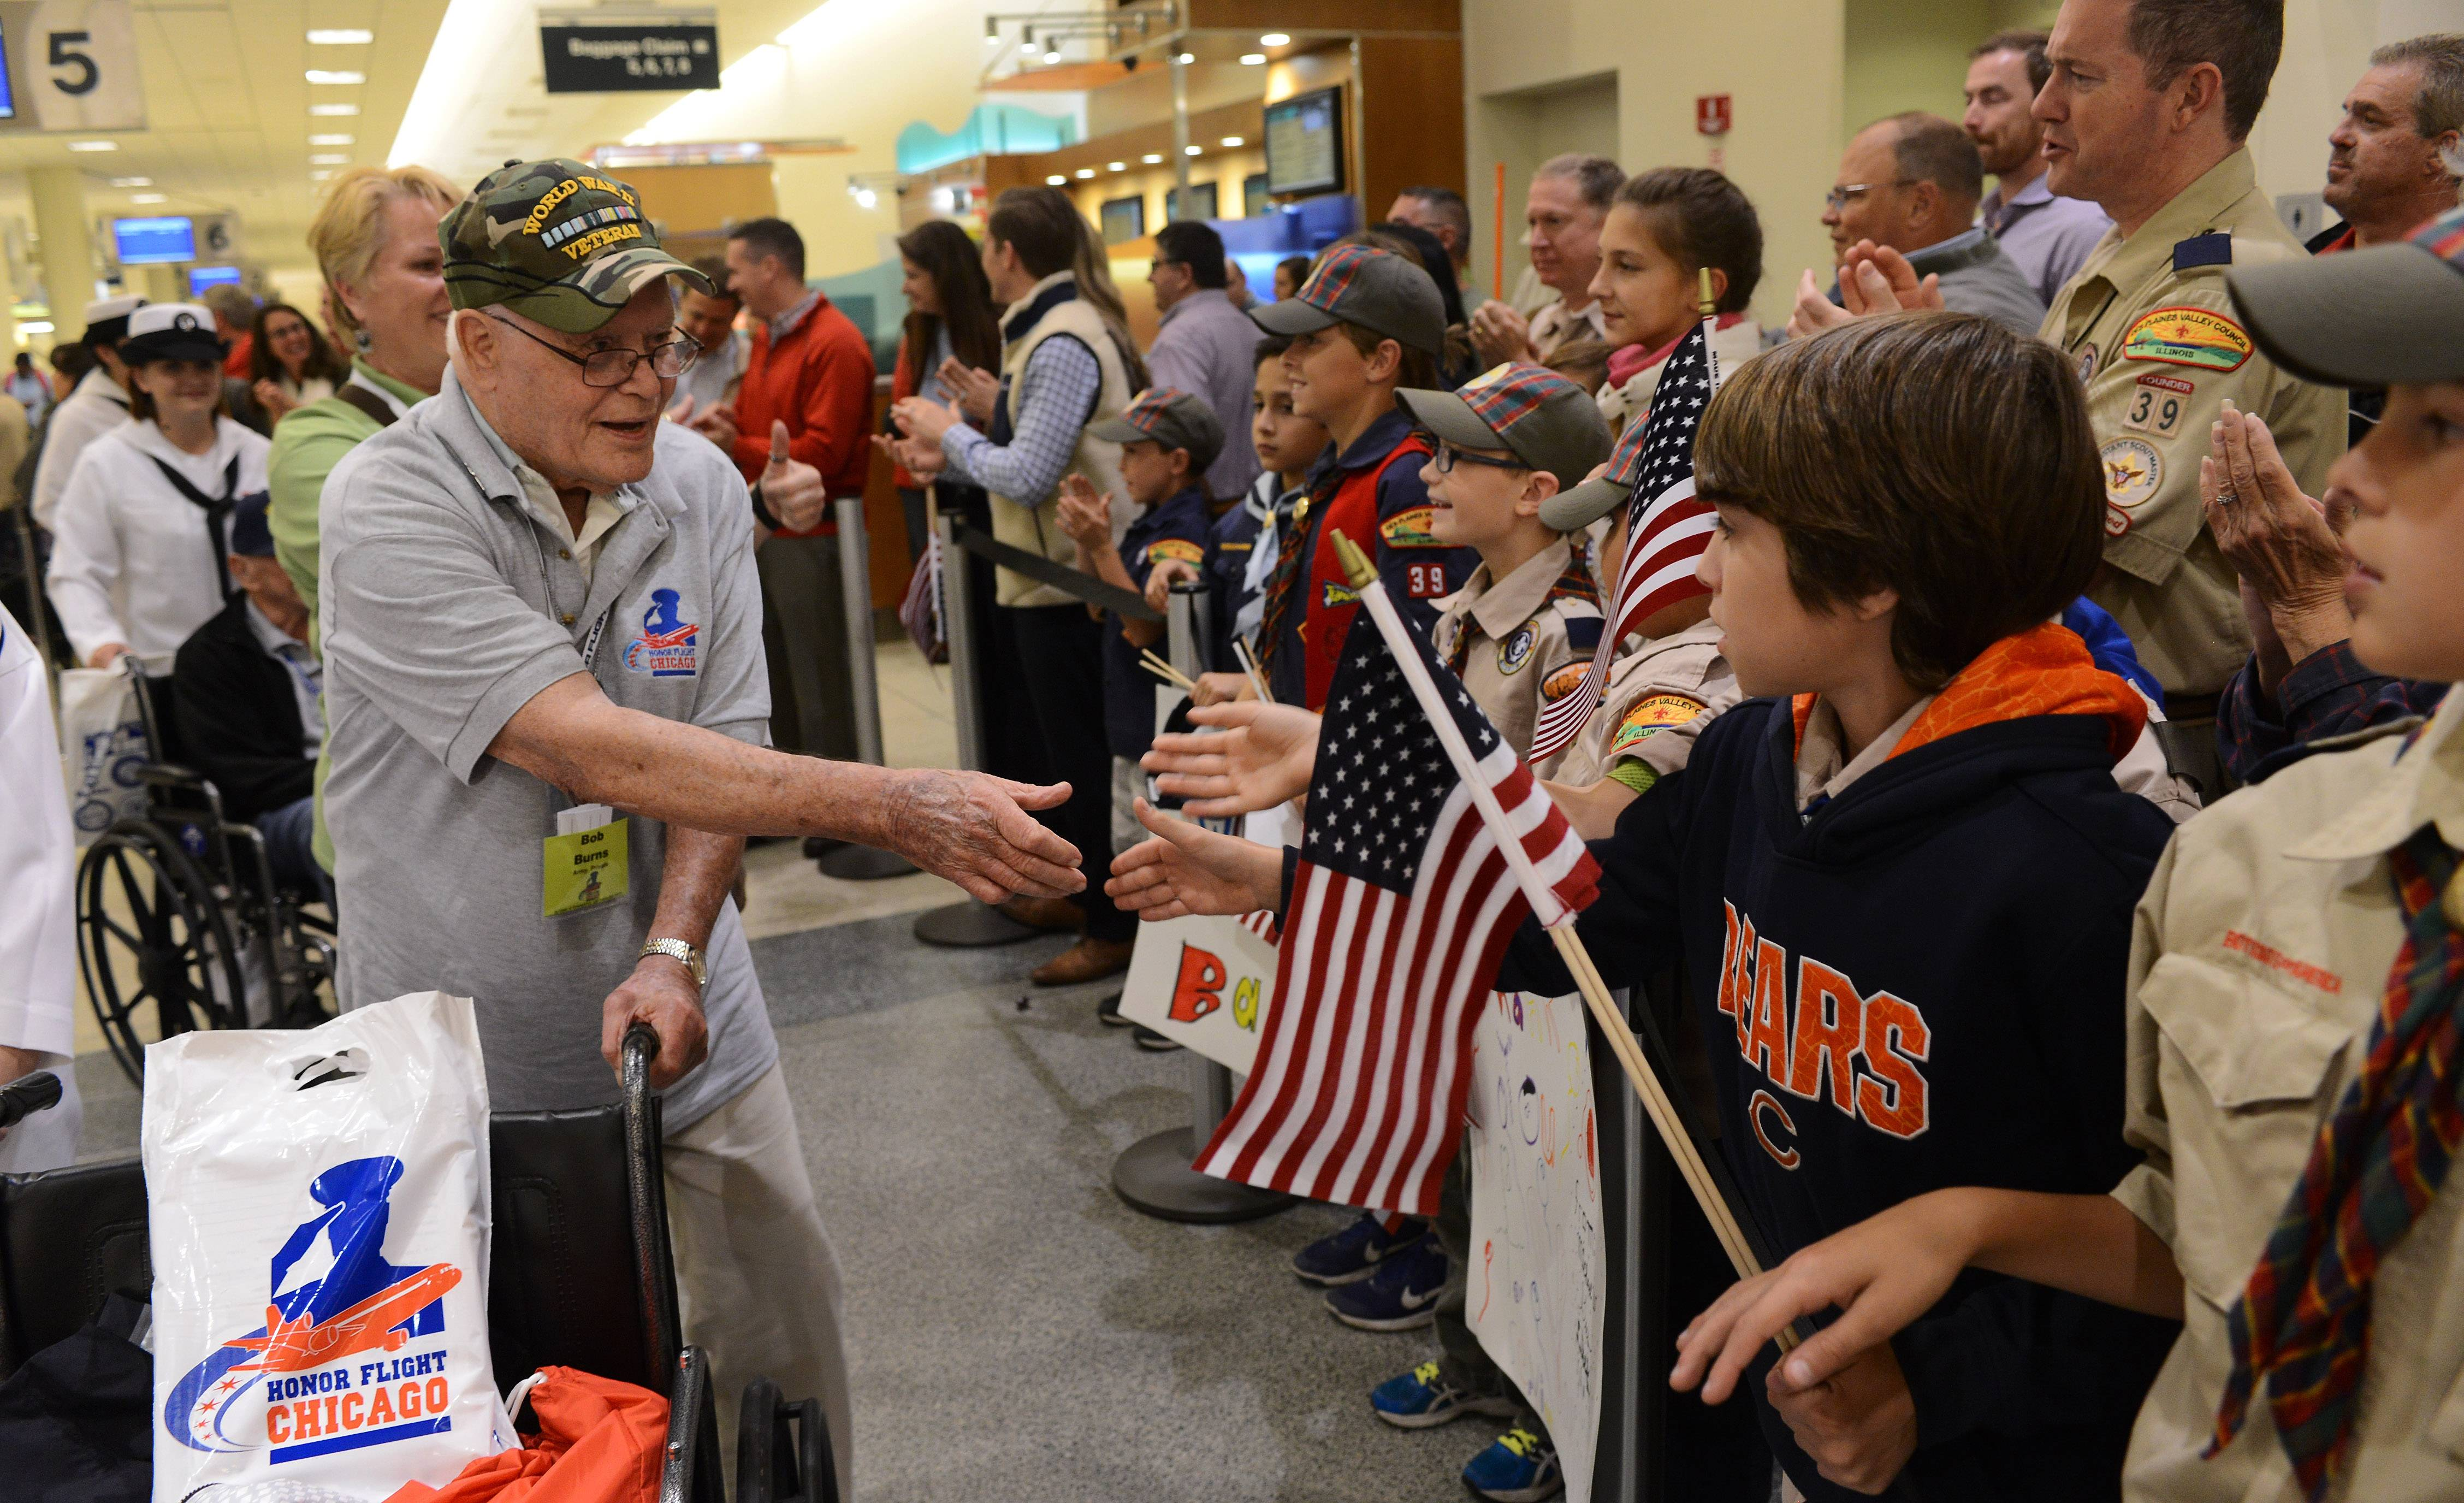 About 2,000 people stage a welcome home rally for Bob Burns of Ingleside as he and 84 other World War II veterans arrive at Chicago Midway International Airport. The veterans were guests of Honor Flight Chicago, which flew what could be its last full group of World War II veterans to Washington, D.C., last week.